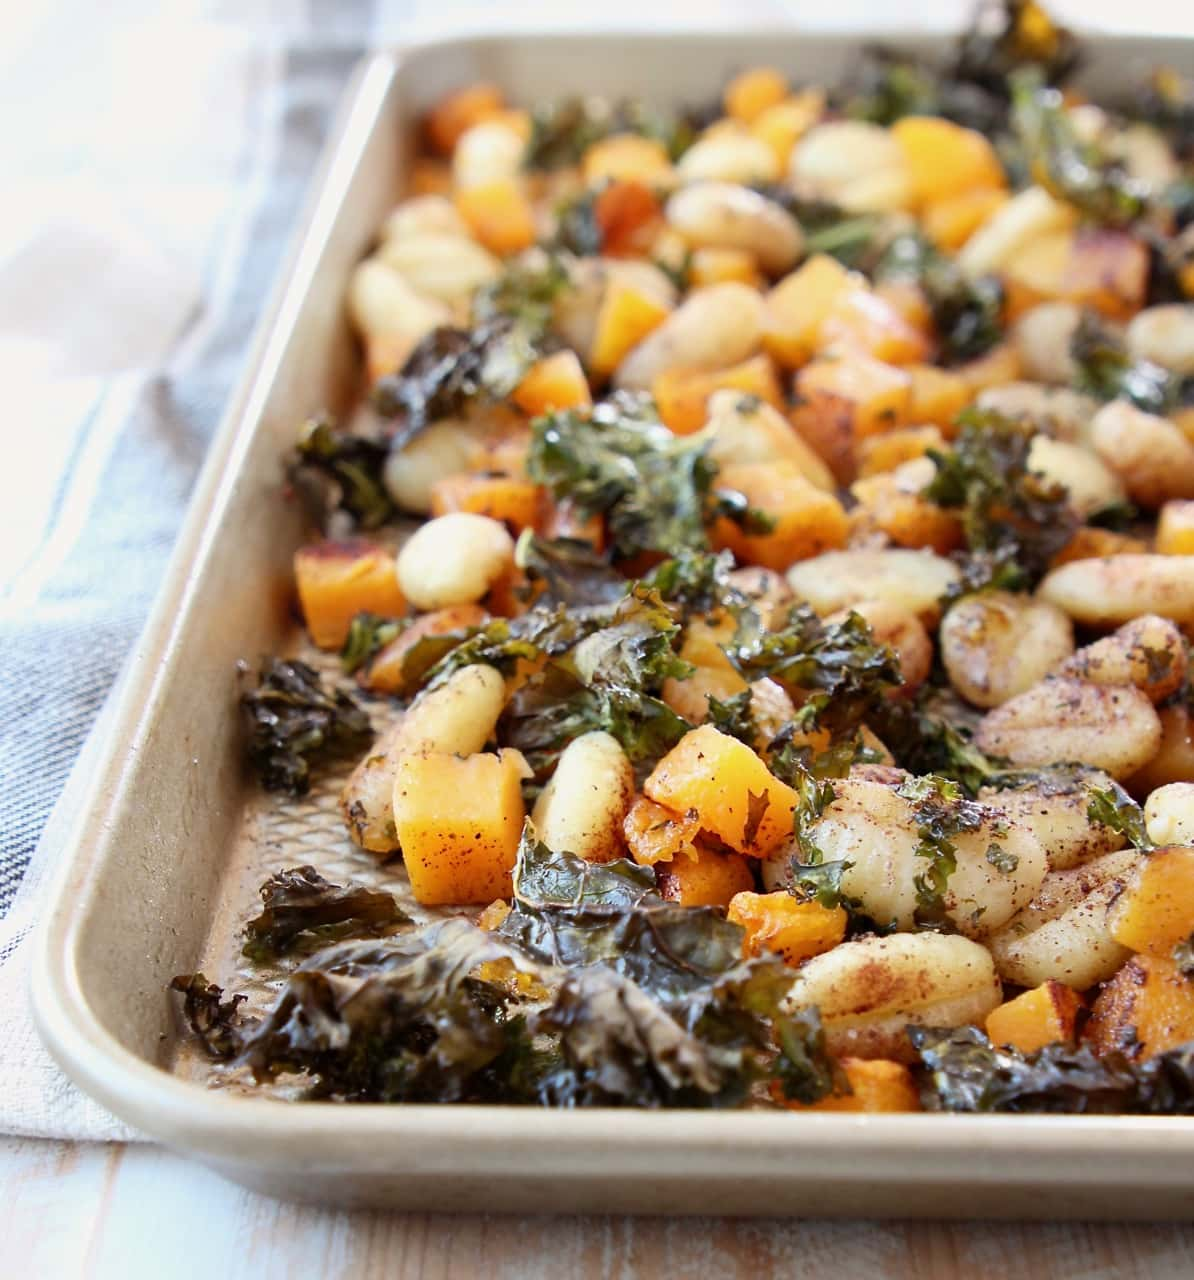 Baked gnocchi, butternut squash and kale on sheet pan